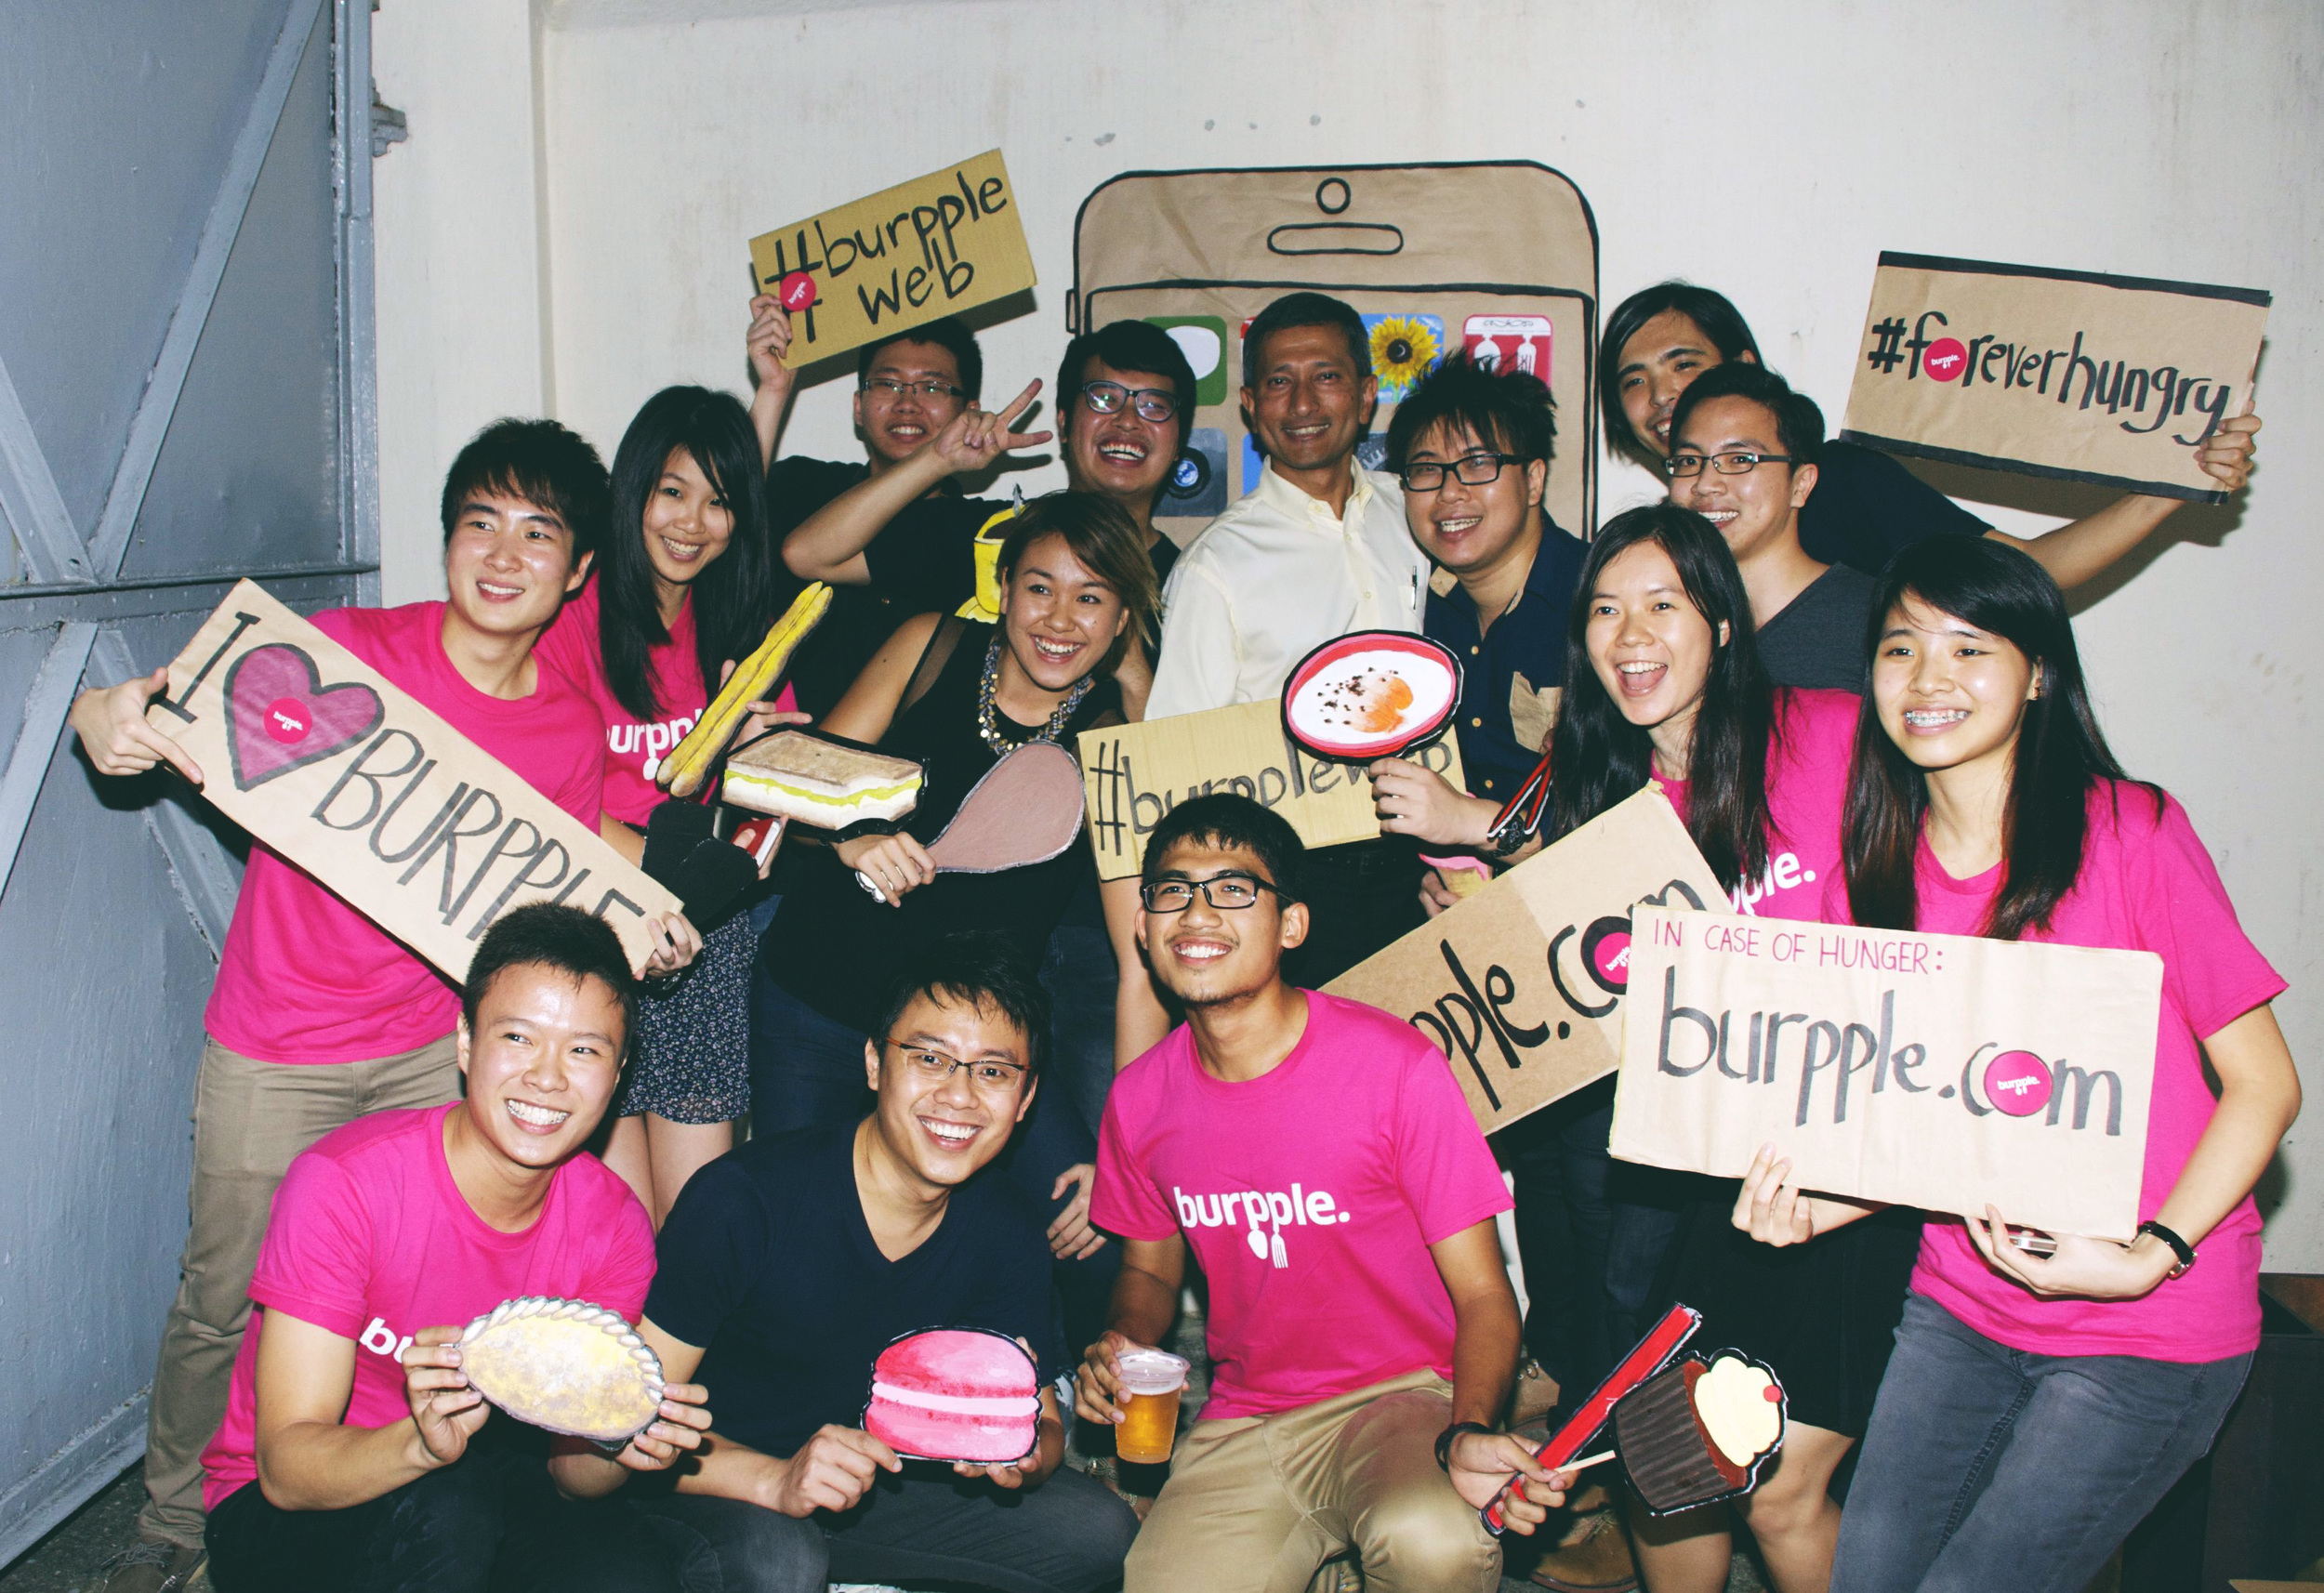 The Burpple team with Minister Vivian Balakrishnan at its product launch event.